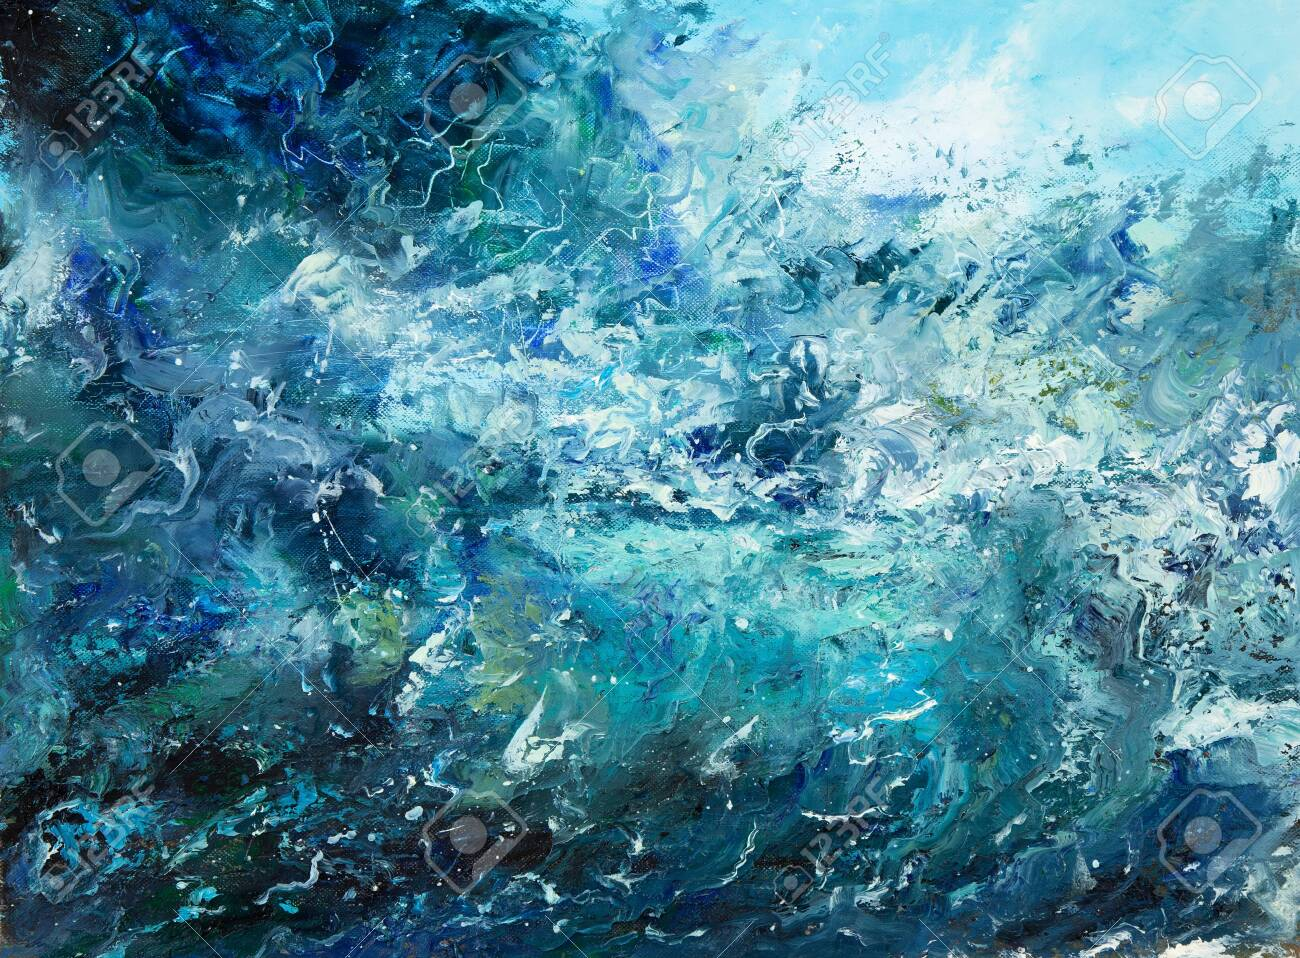 Original Abstract Oil Painting Showing Waves In Ocean Or Sea